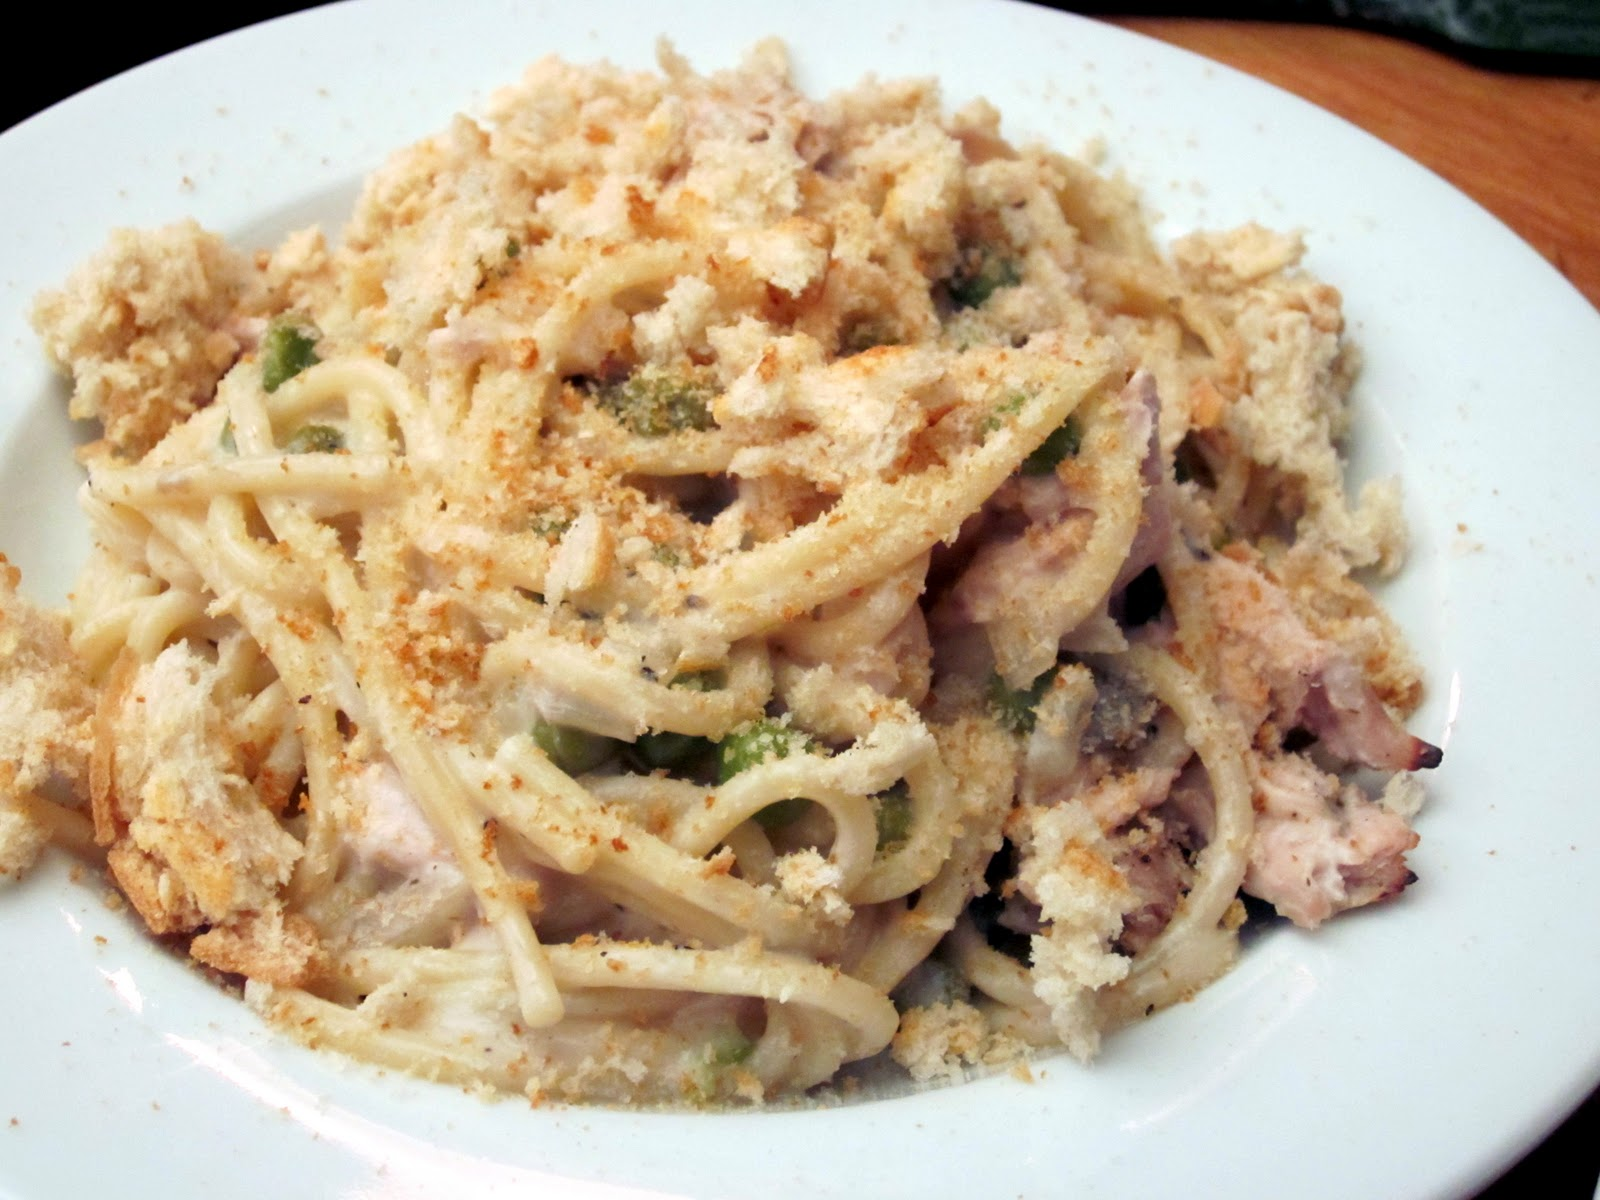 ... turkey tetrazzini turkey tetrazzini turkey tetrazzini turkey